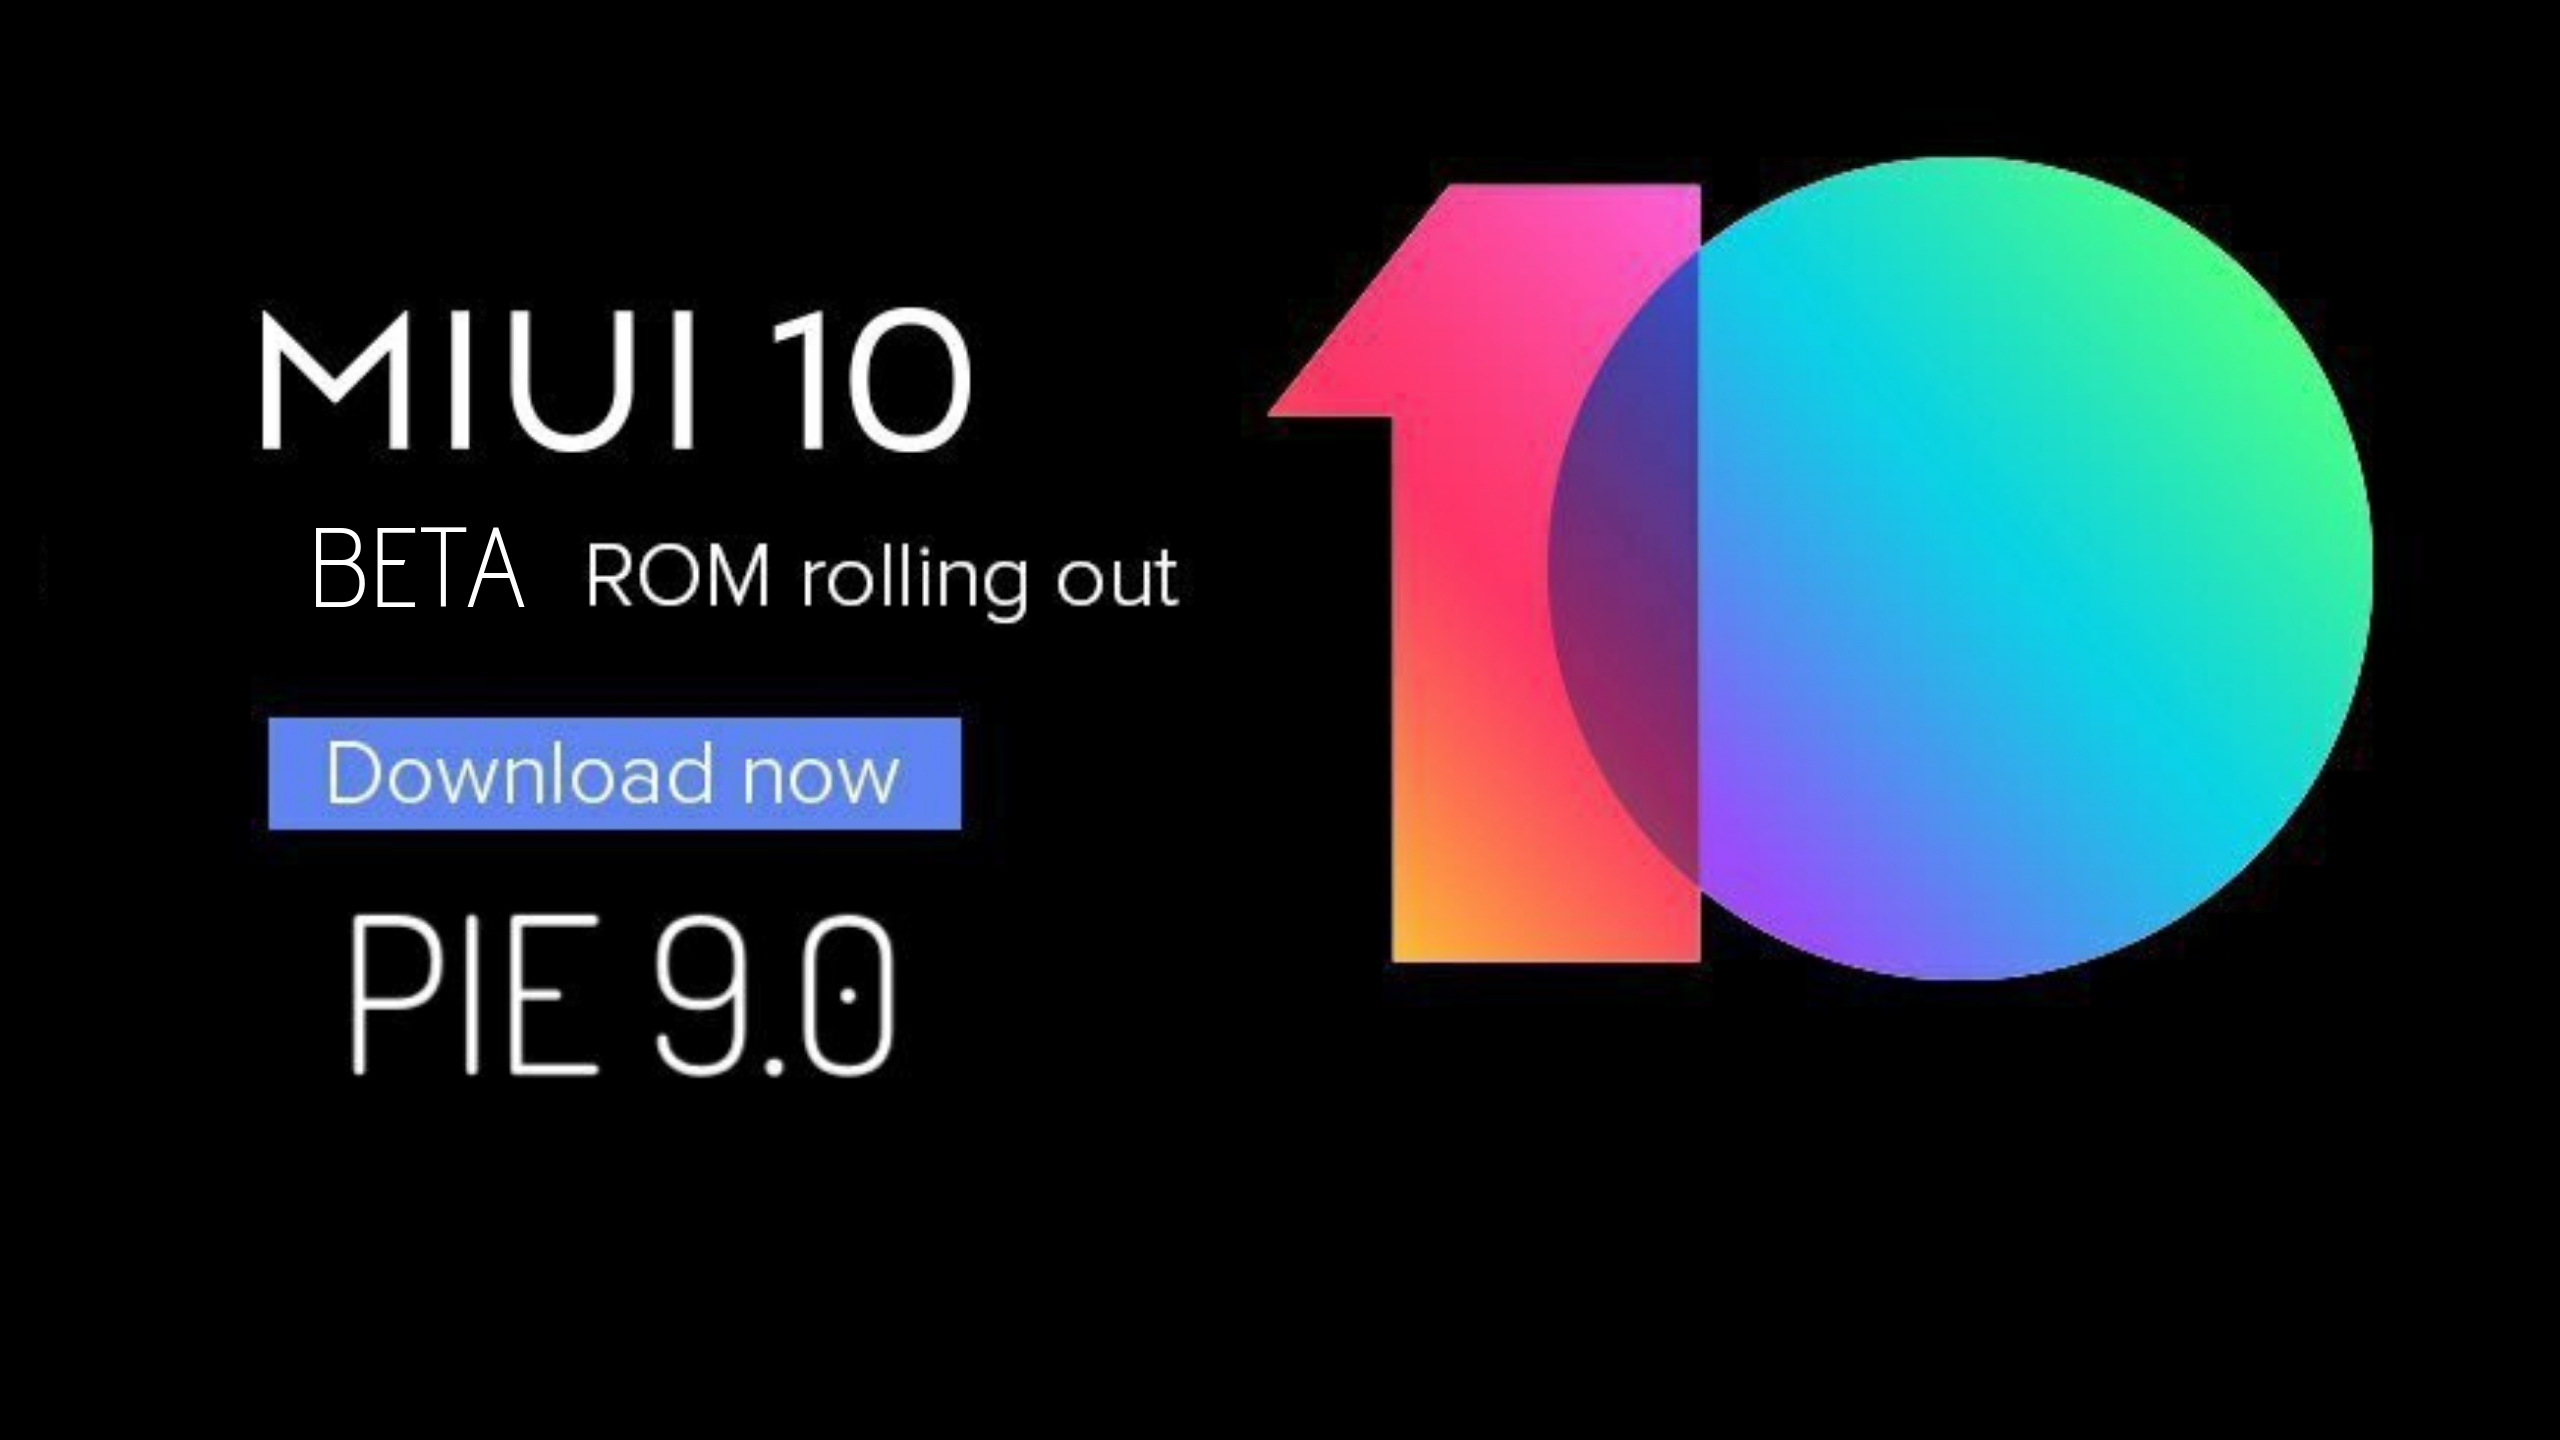 Miui 10 9 8 8 Beta Update for Redmi Note 5 Pro- Download